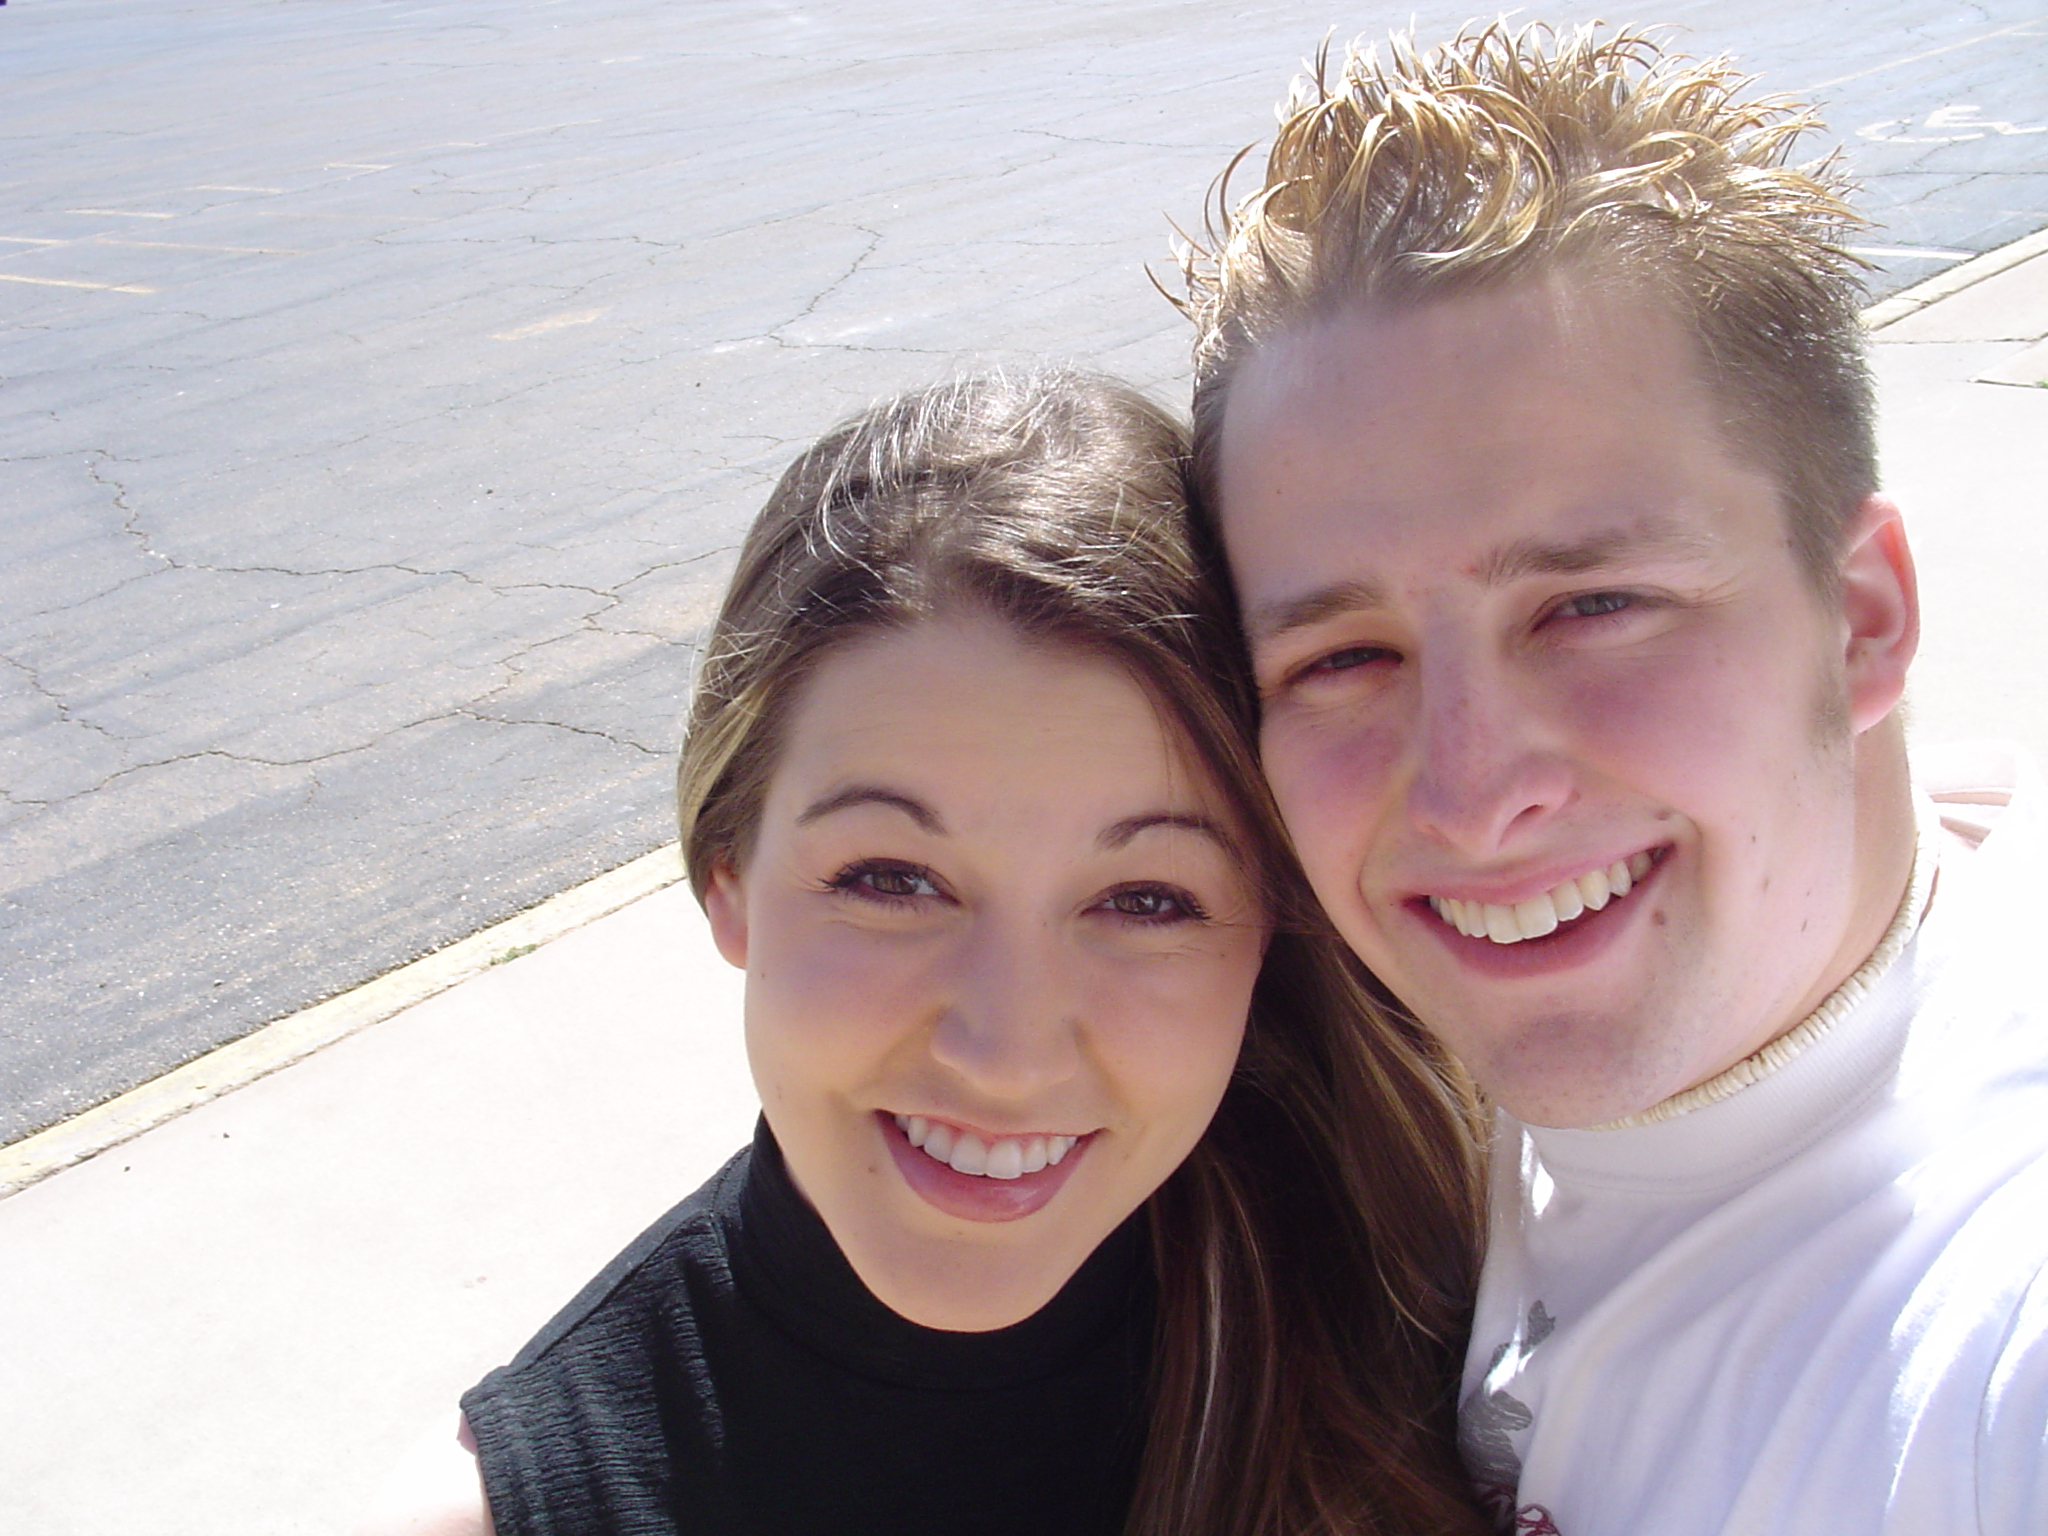 3.24.04 New Mexico. Such a sweet time in our relationship. Traveling and singing together.